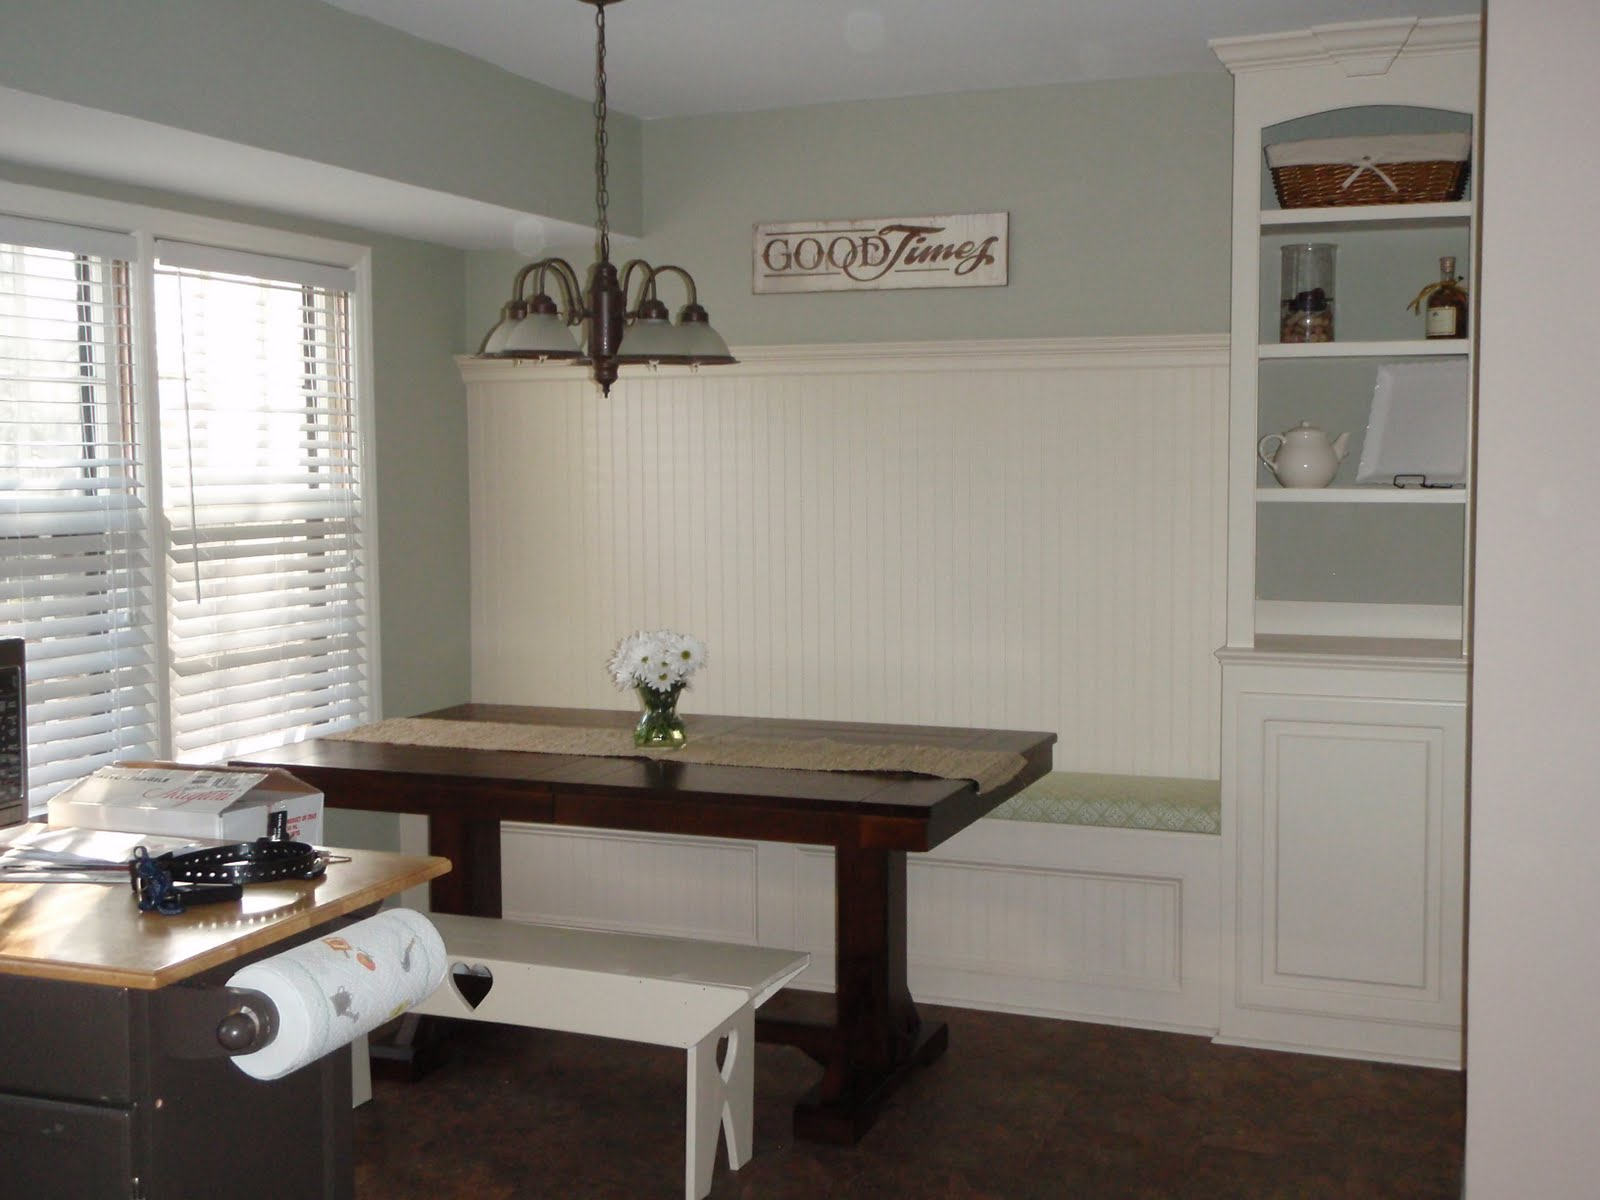 Remodelaholic kitchen renovation with built in banquette seating - Kitchen bench designs ...